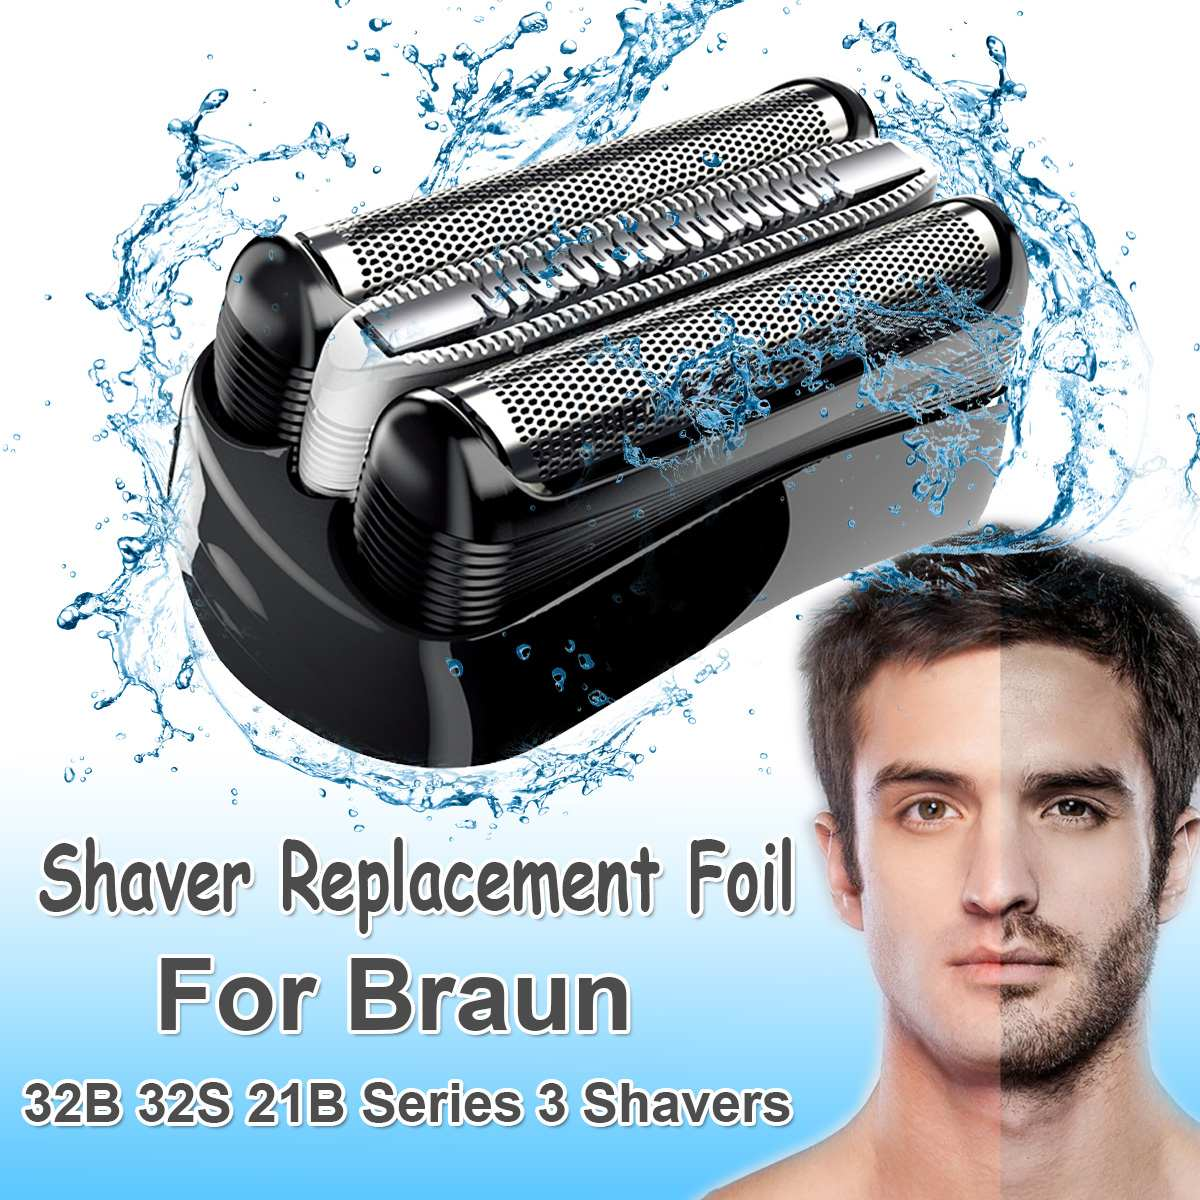 Replacement Shaver Foil Head for Braun 32B 32S 21B Series 3 301S 310S 320S 360S 3000S